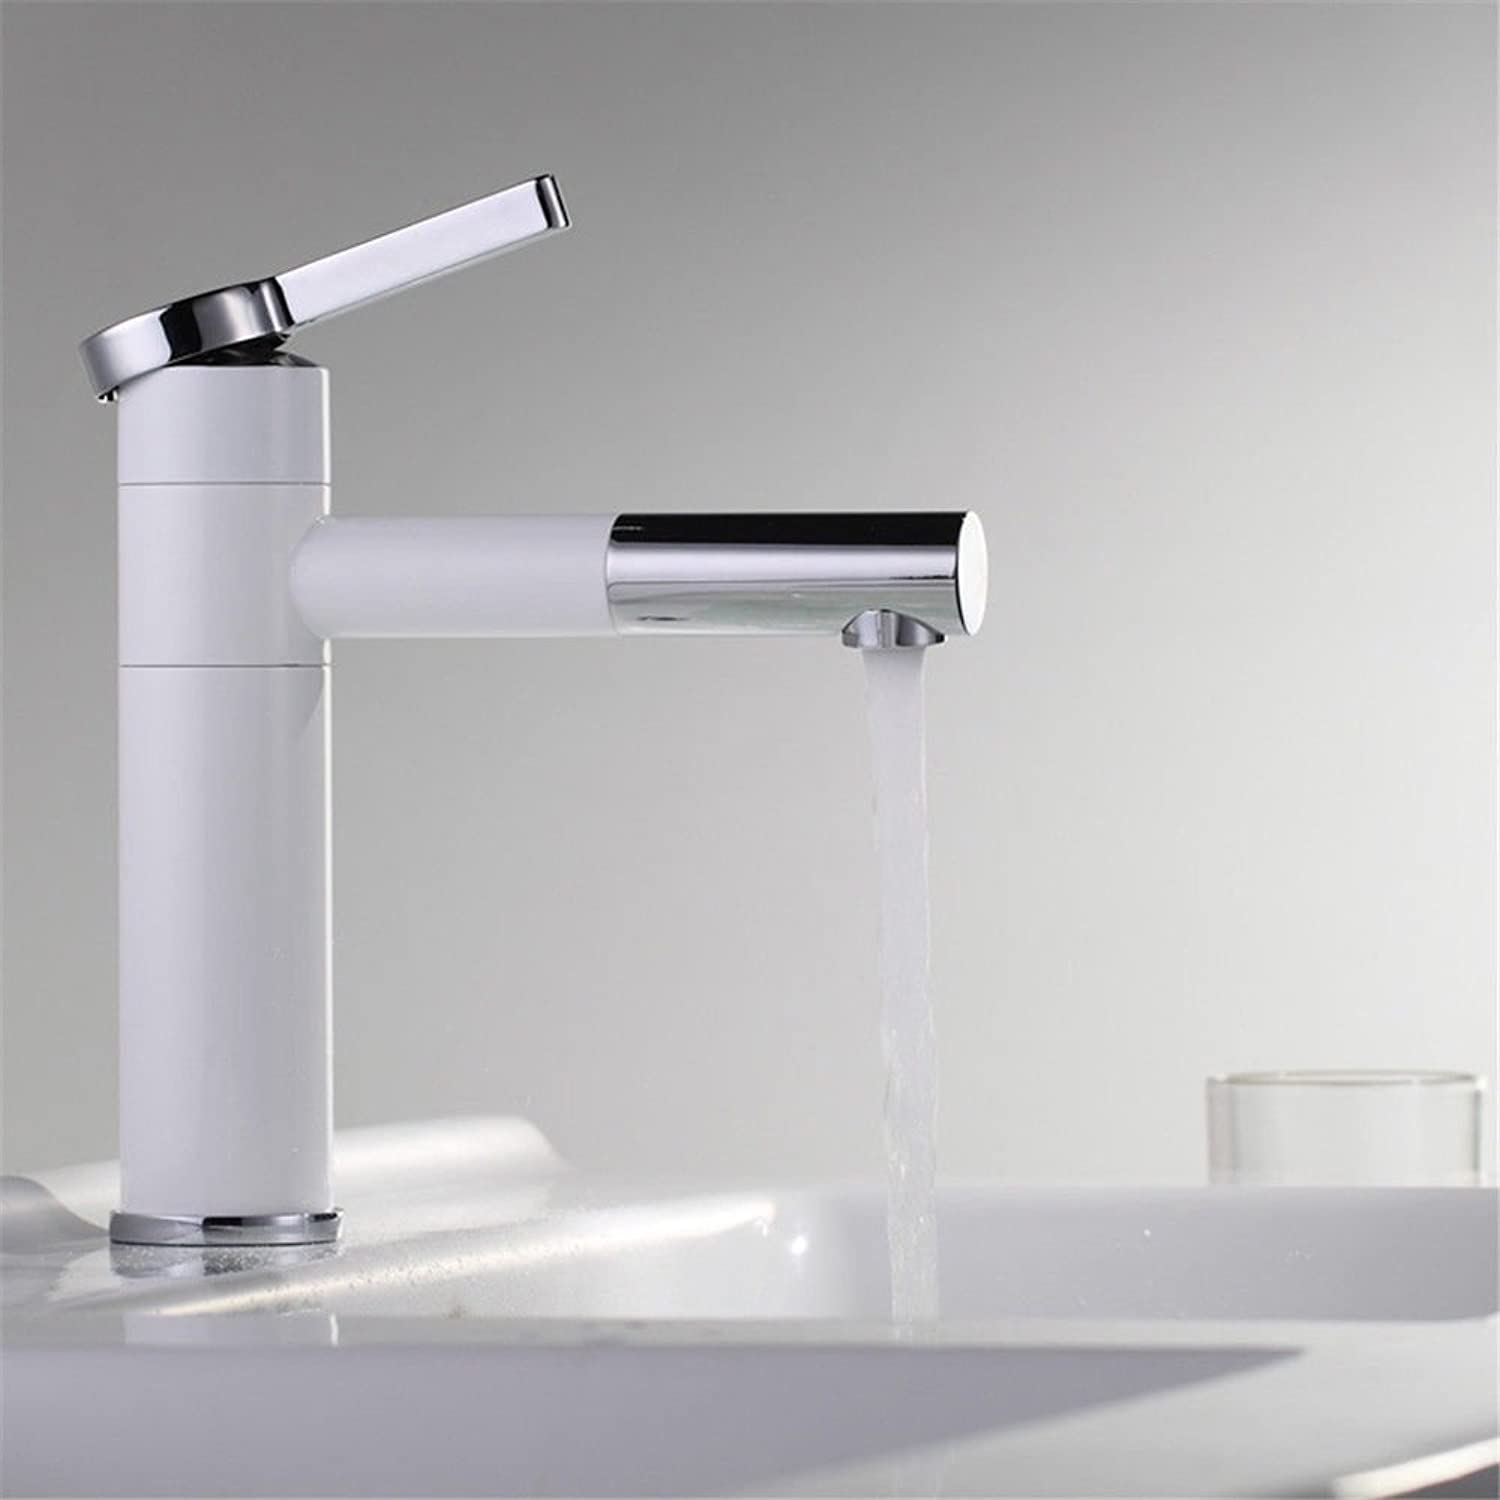 Hlluya Professional Sink Mixer Tap Kitchen Faucet White High Temperature Paint 360 degree swivel faucet antioxidant hot and cold full brass faucets basin mixer